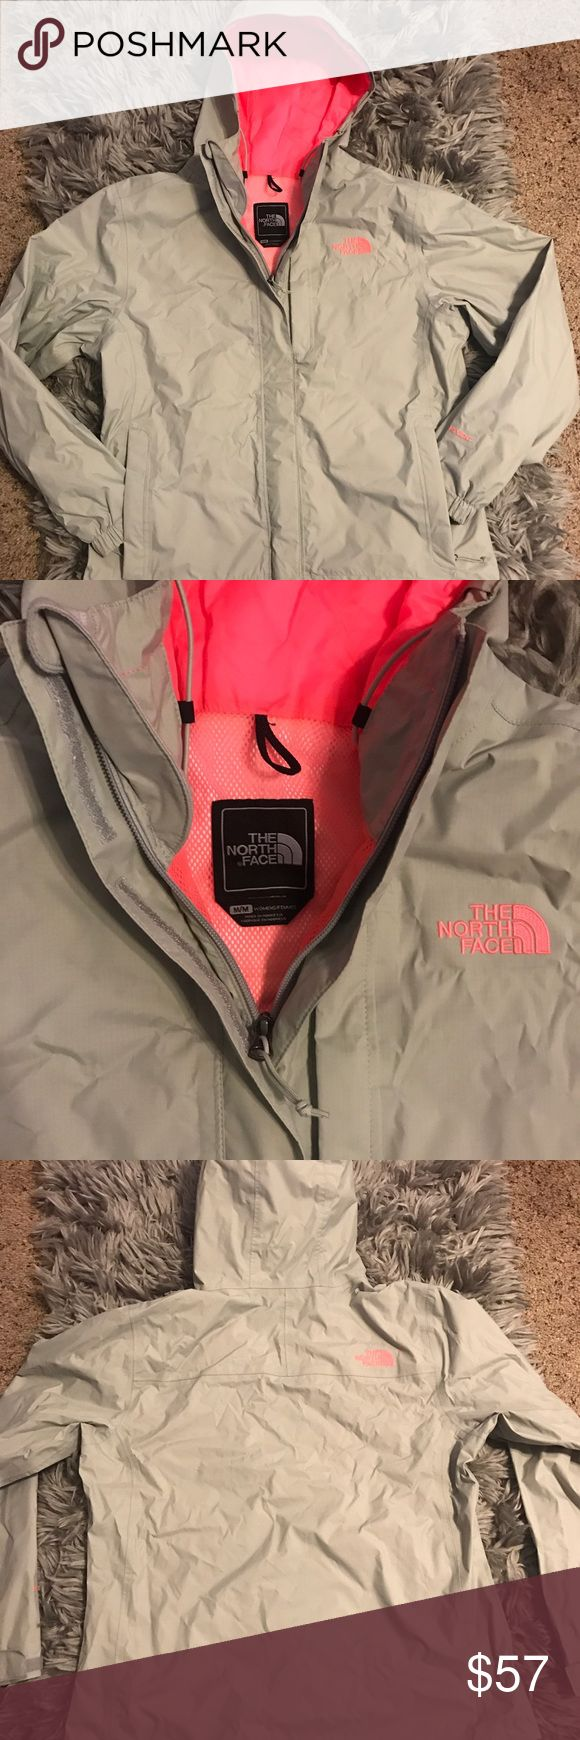 North Face Jacket North Face Hyvent Jacket / Women's The North Face Resolve Jacket, size small -Grey/Pink The North Face Jackets & Coats